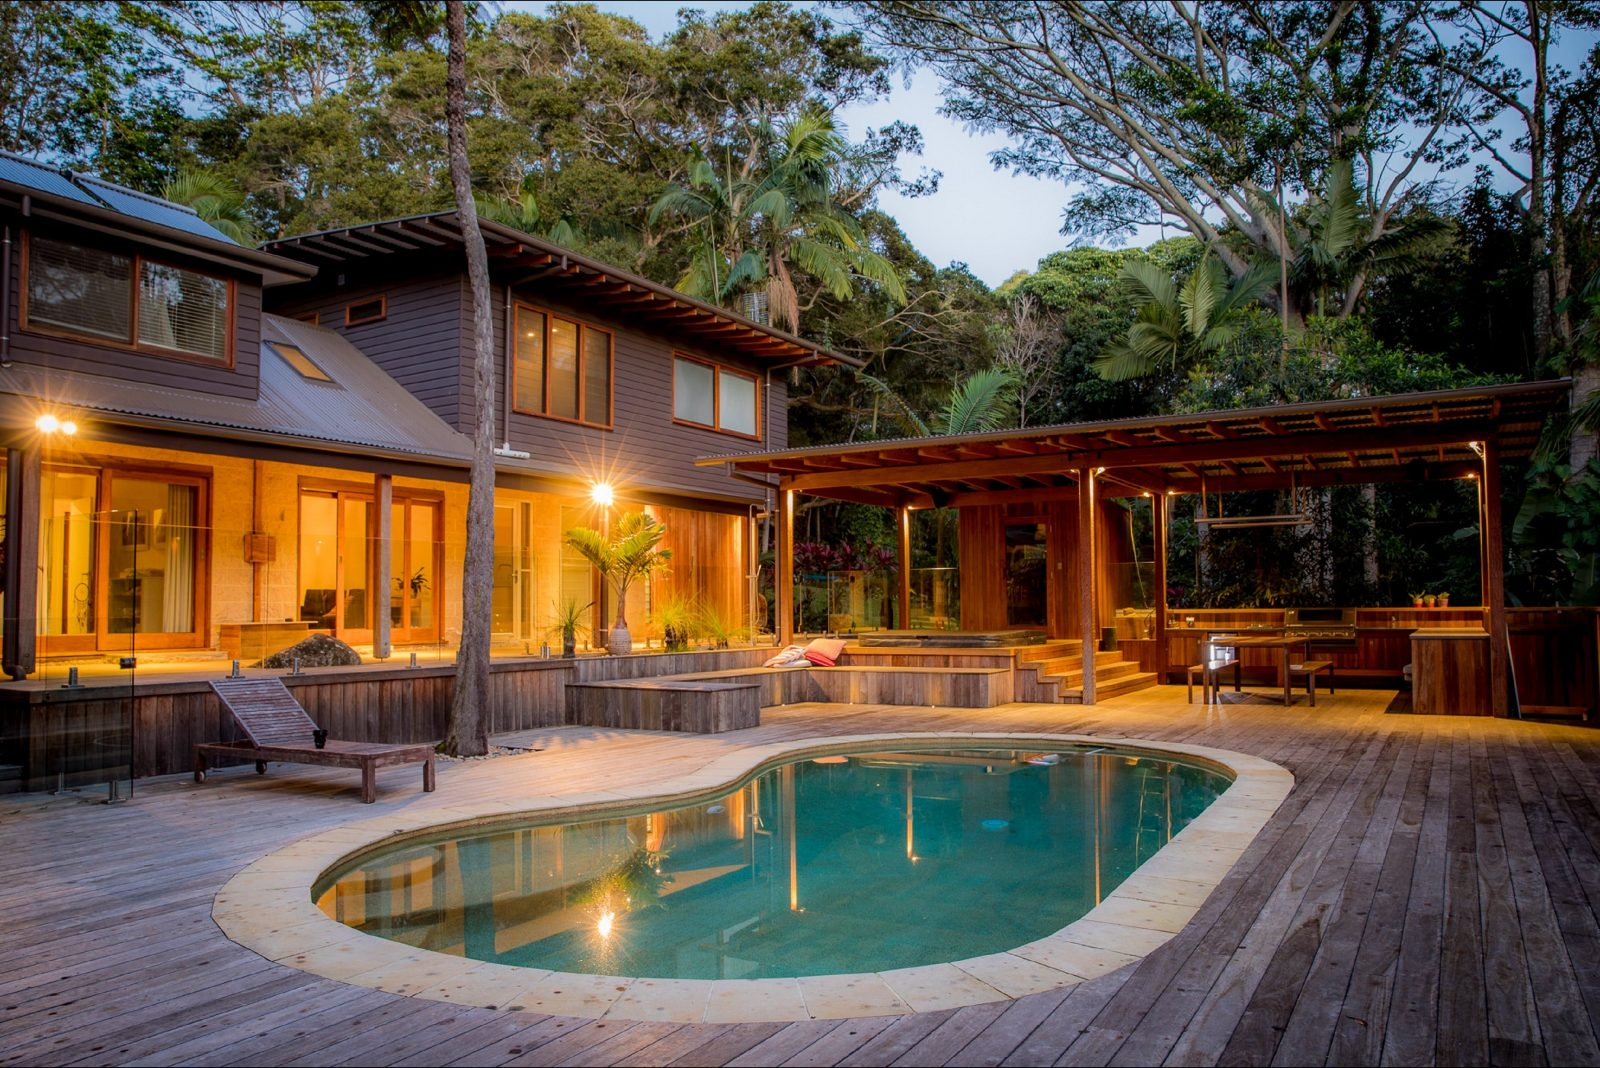 Apalie Retreat - pool and barbecue pavilion